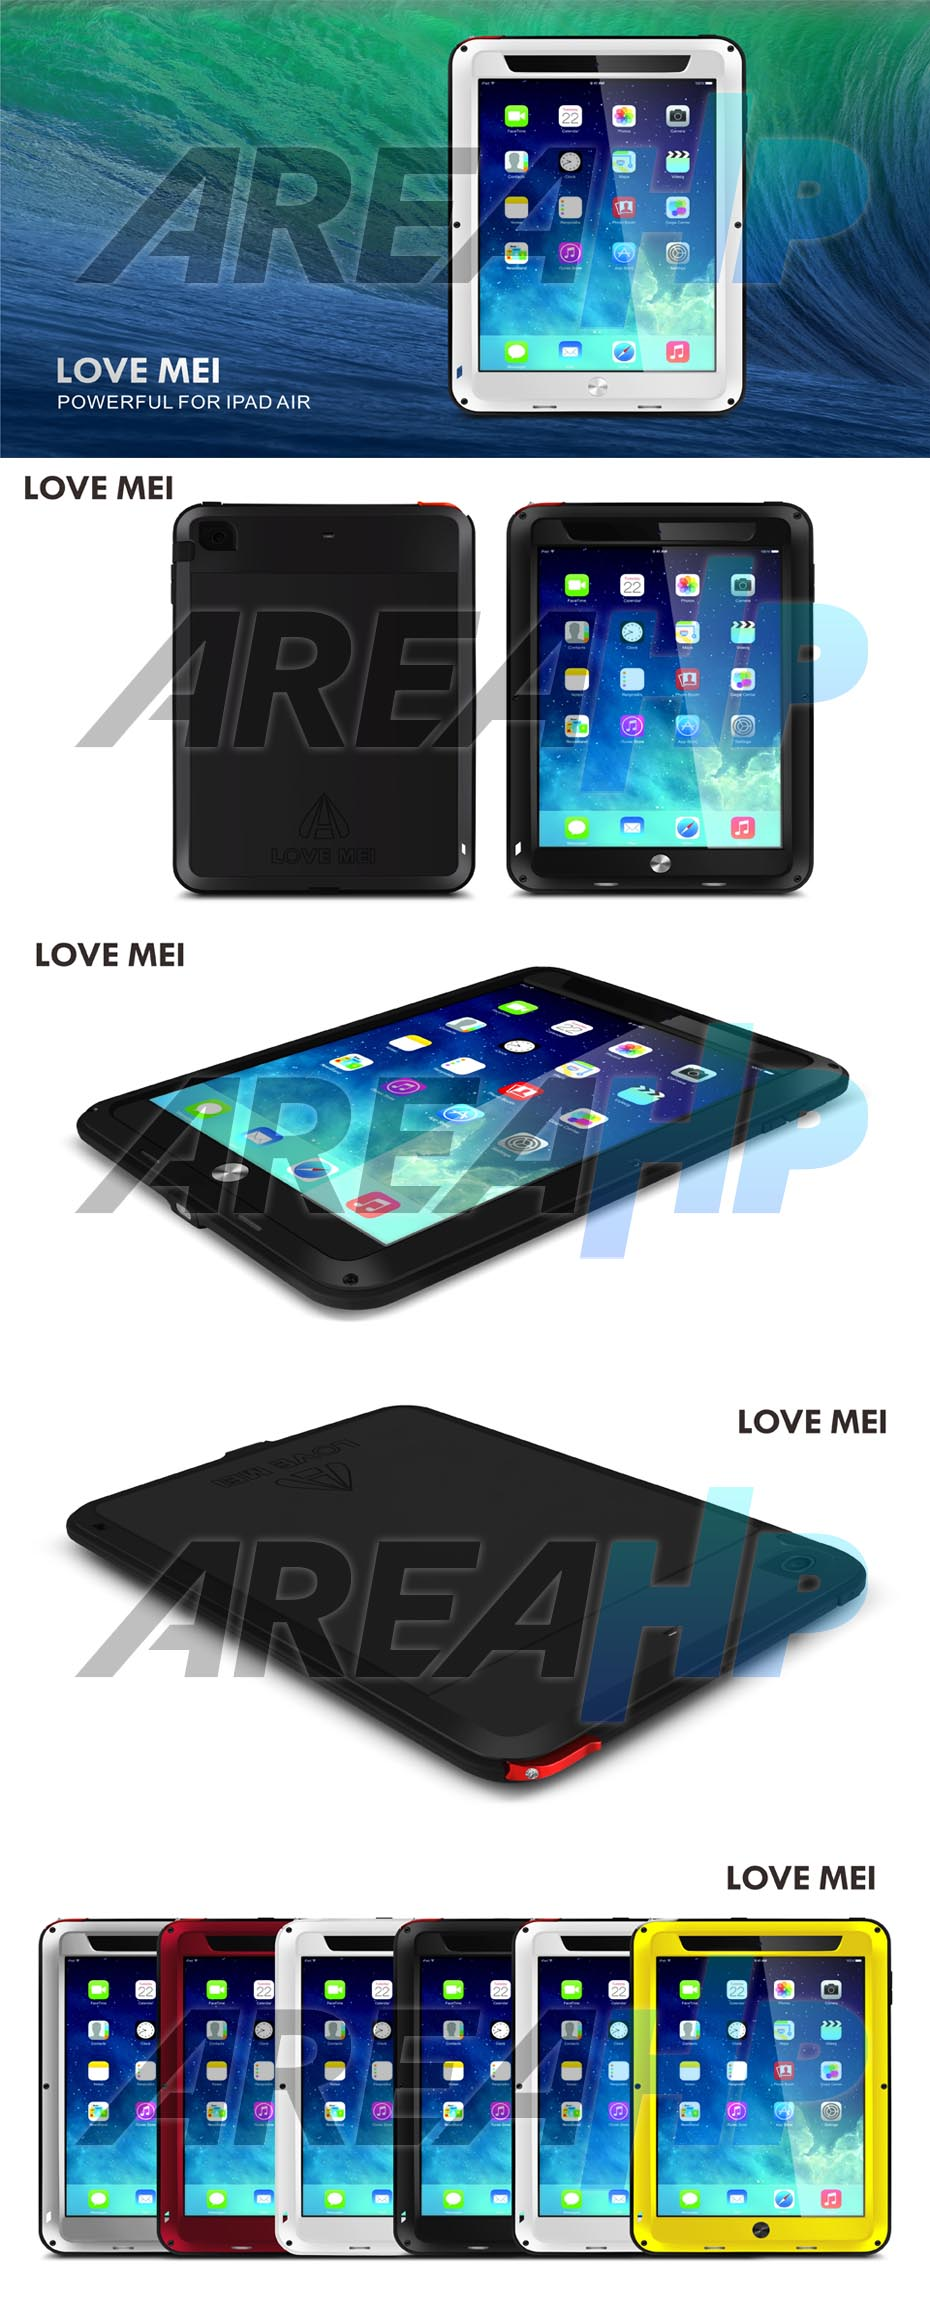 Love Mei Powerful Case for iPad Air Overview